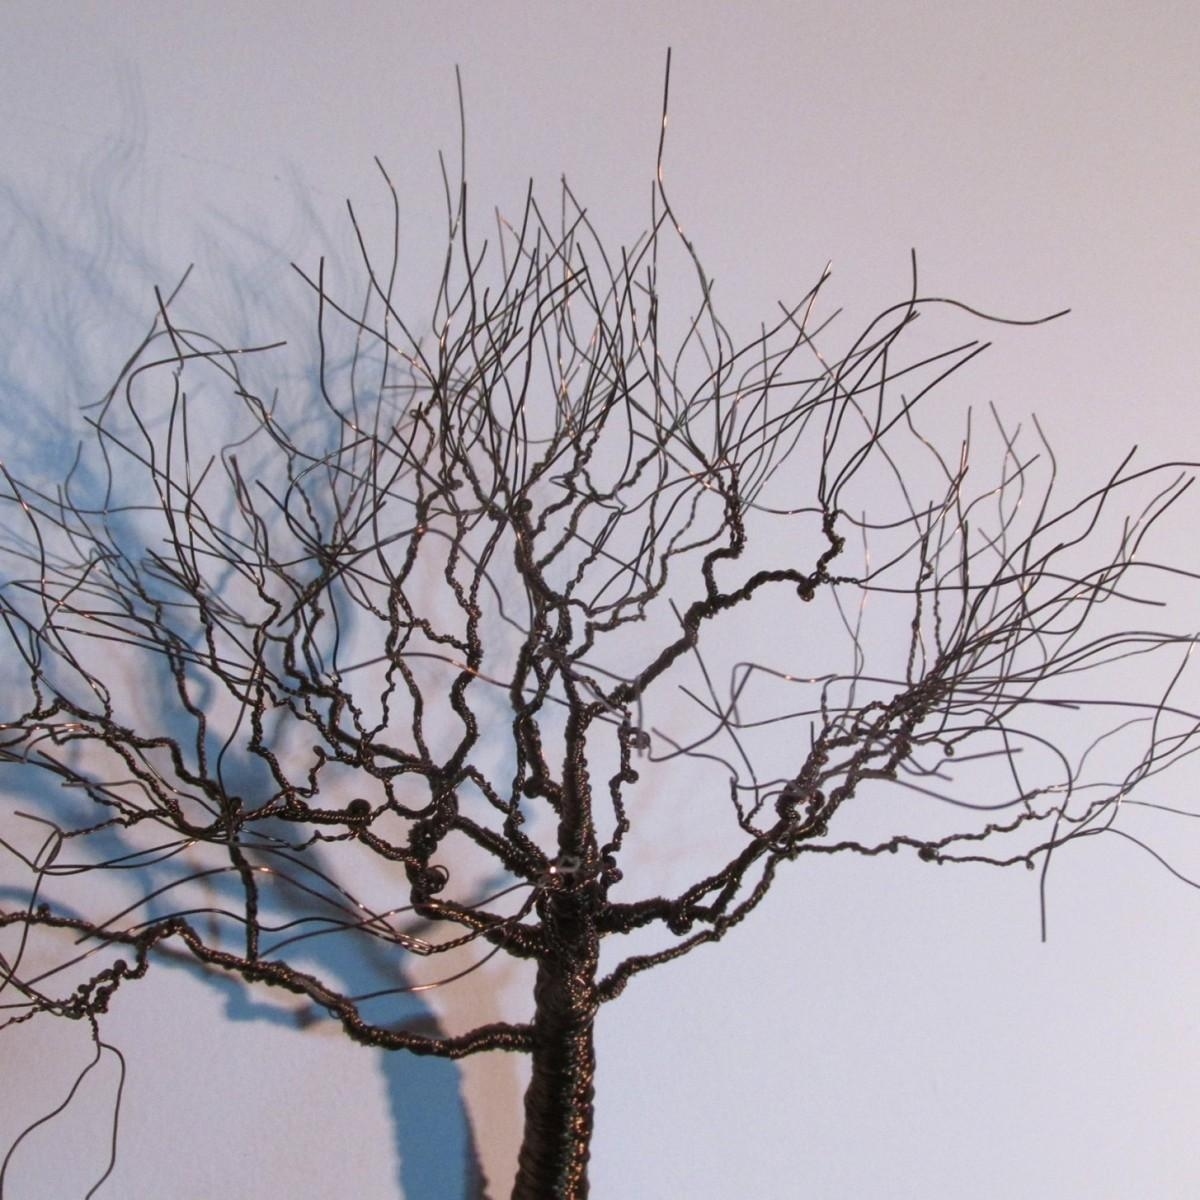 Metal Wall Art Decor As An Amazing Focal Point Intended For Metal Tree Wall Art Sculpture (Image 9 of 20)